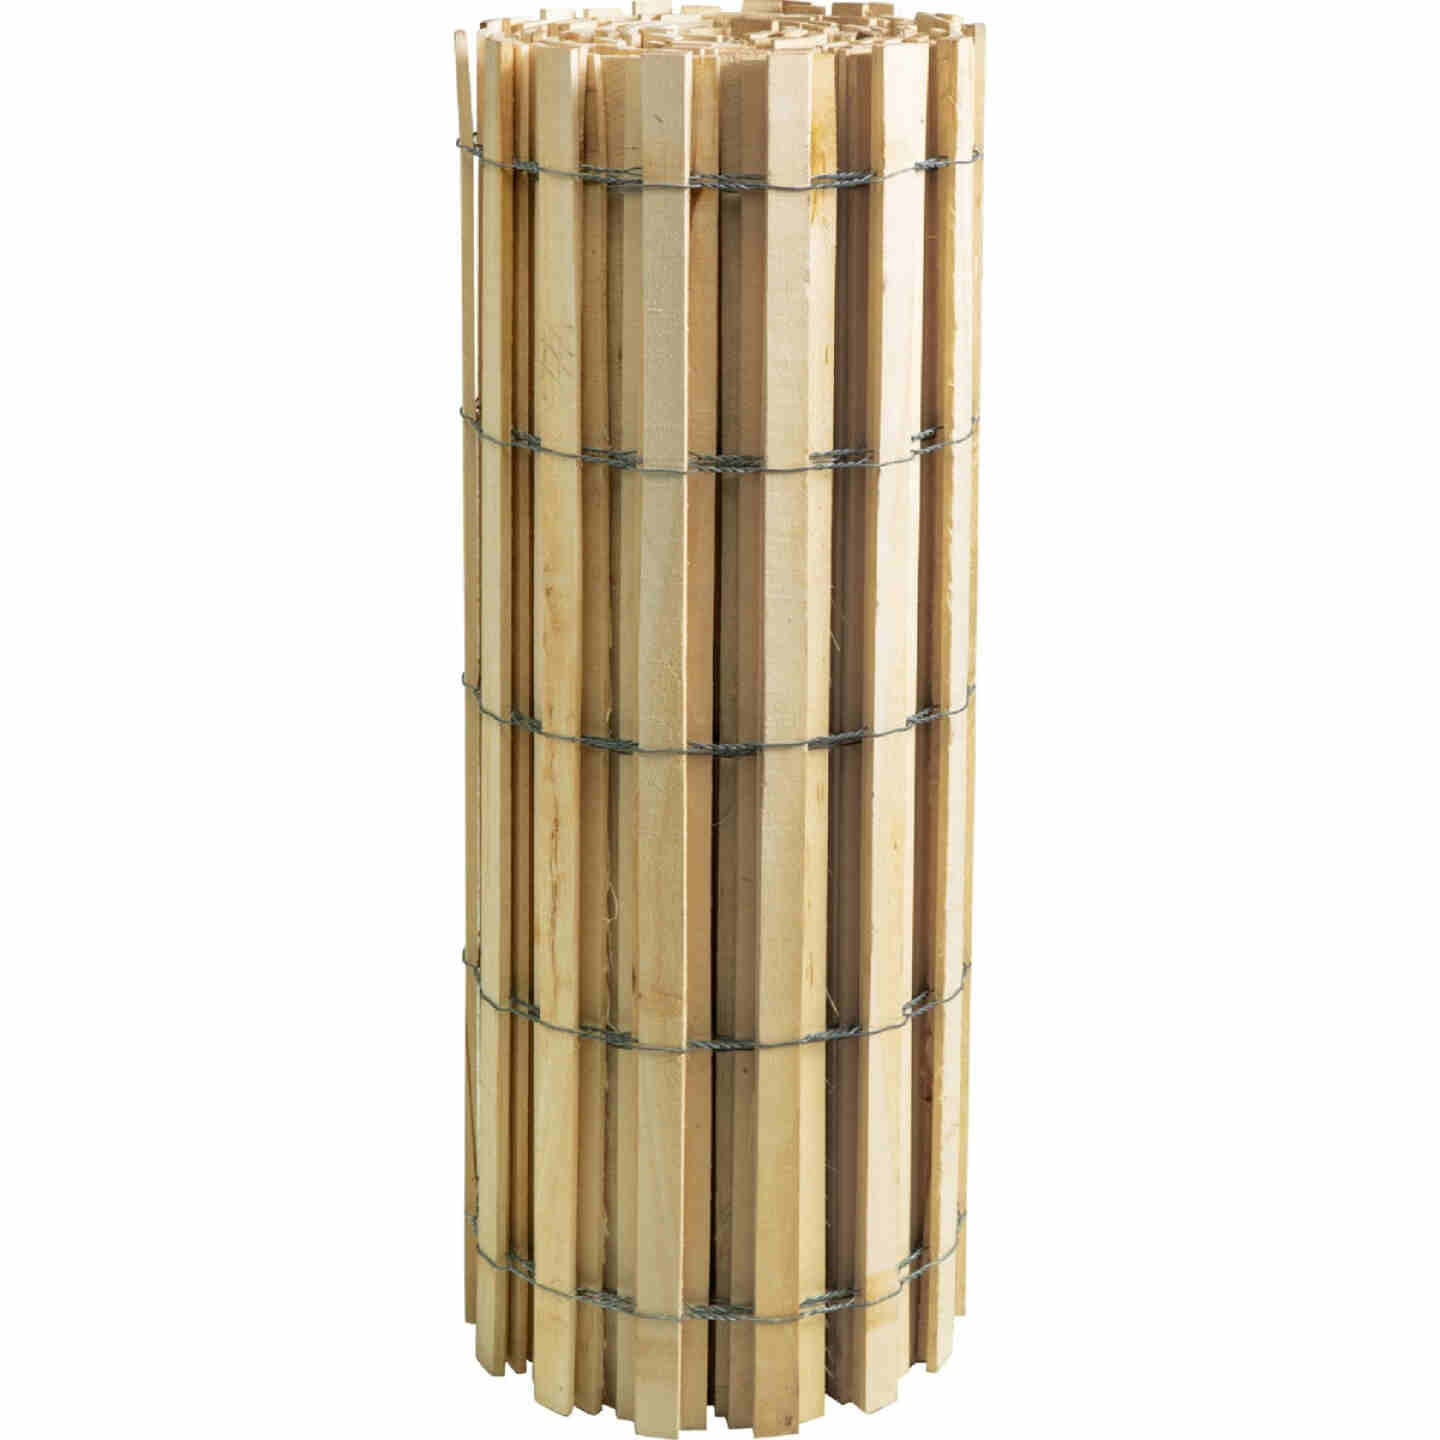 Sourcewood 4 Ft. H. x 50 Ft. L. Wood Snow Safety Fence, Natural Image 1